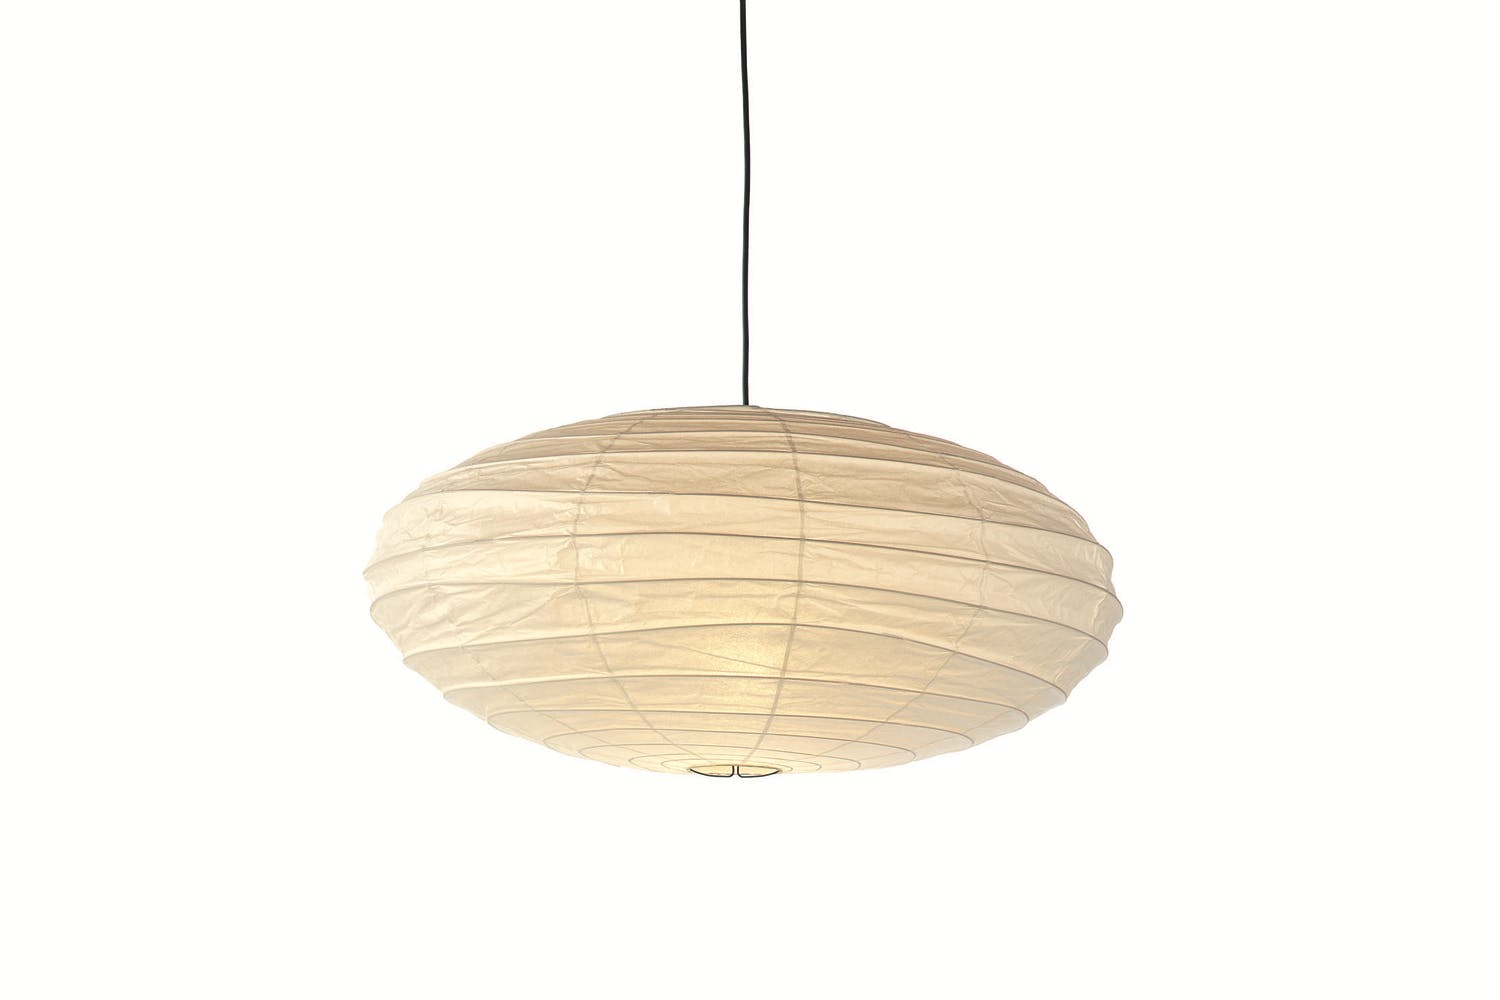 akari light sculptures suspension lamp by isamu noguchi for vitra akari furniture